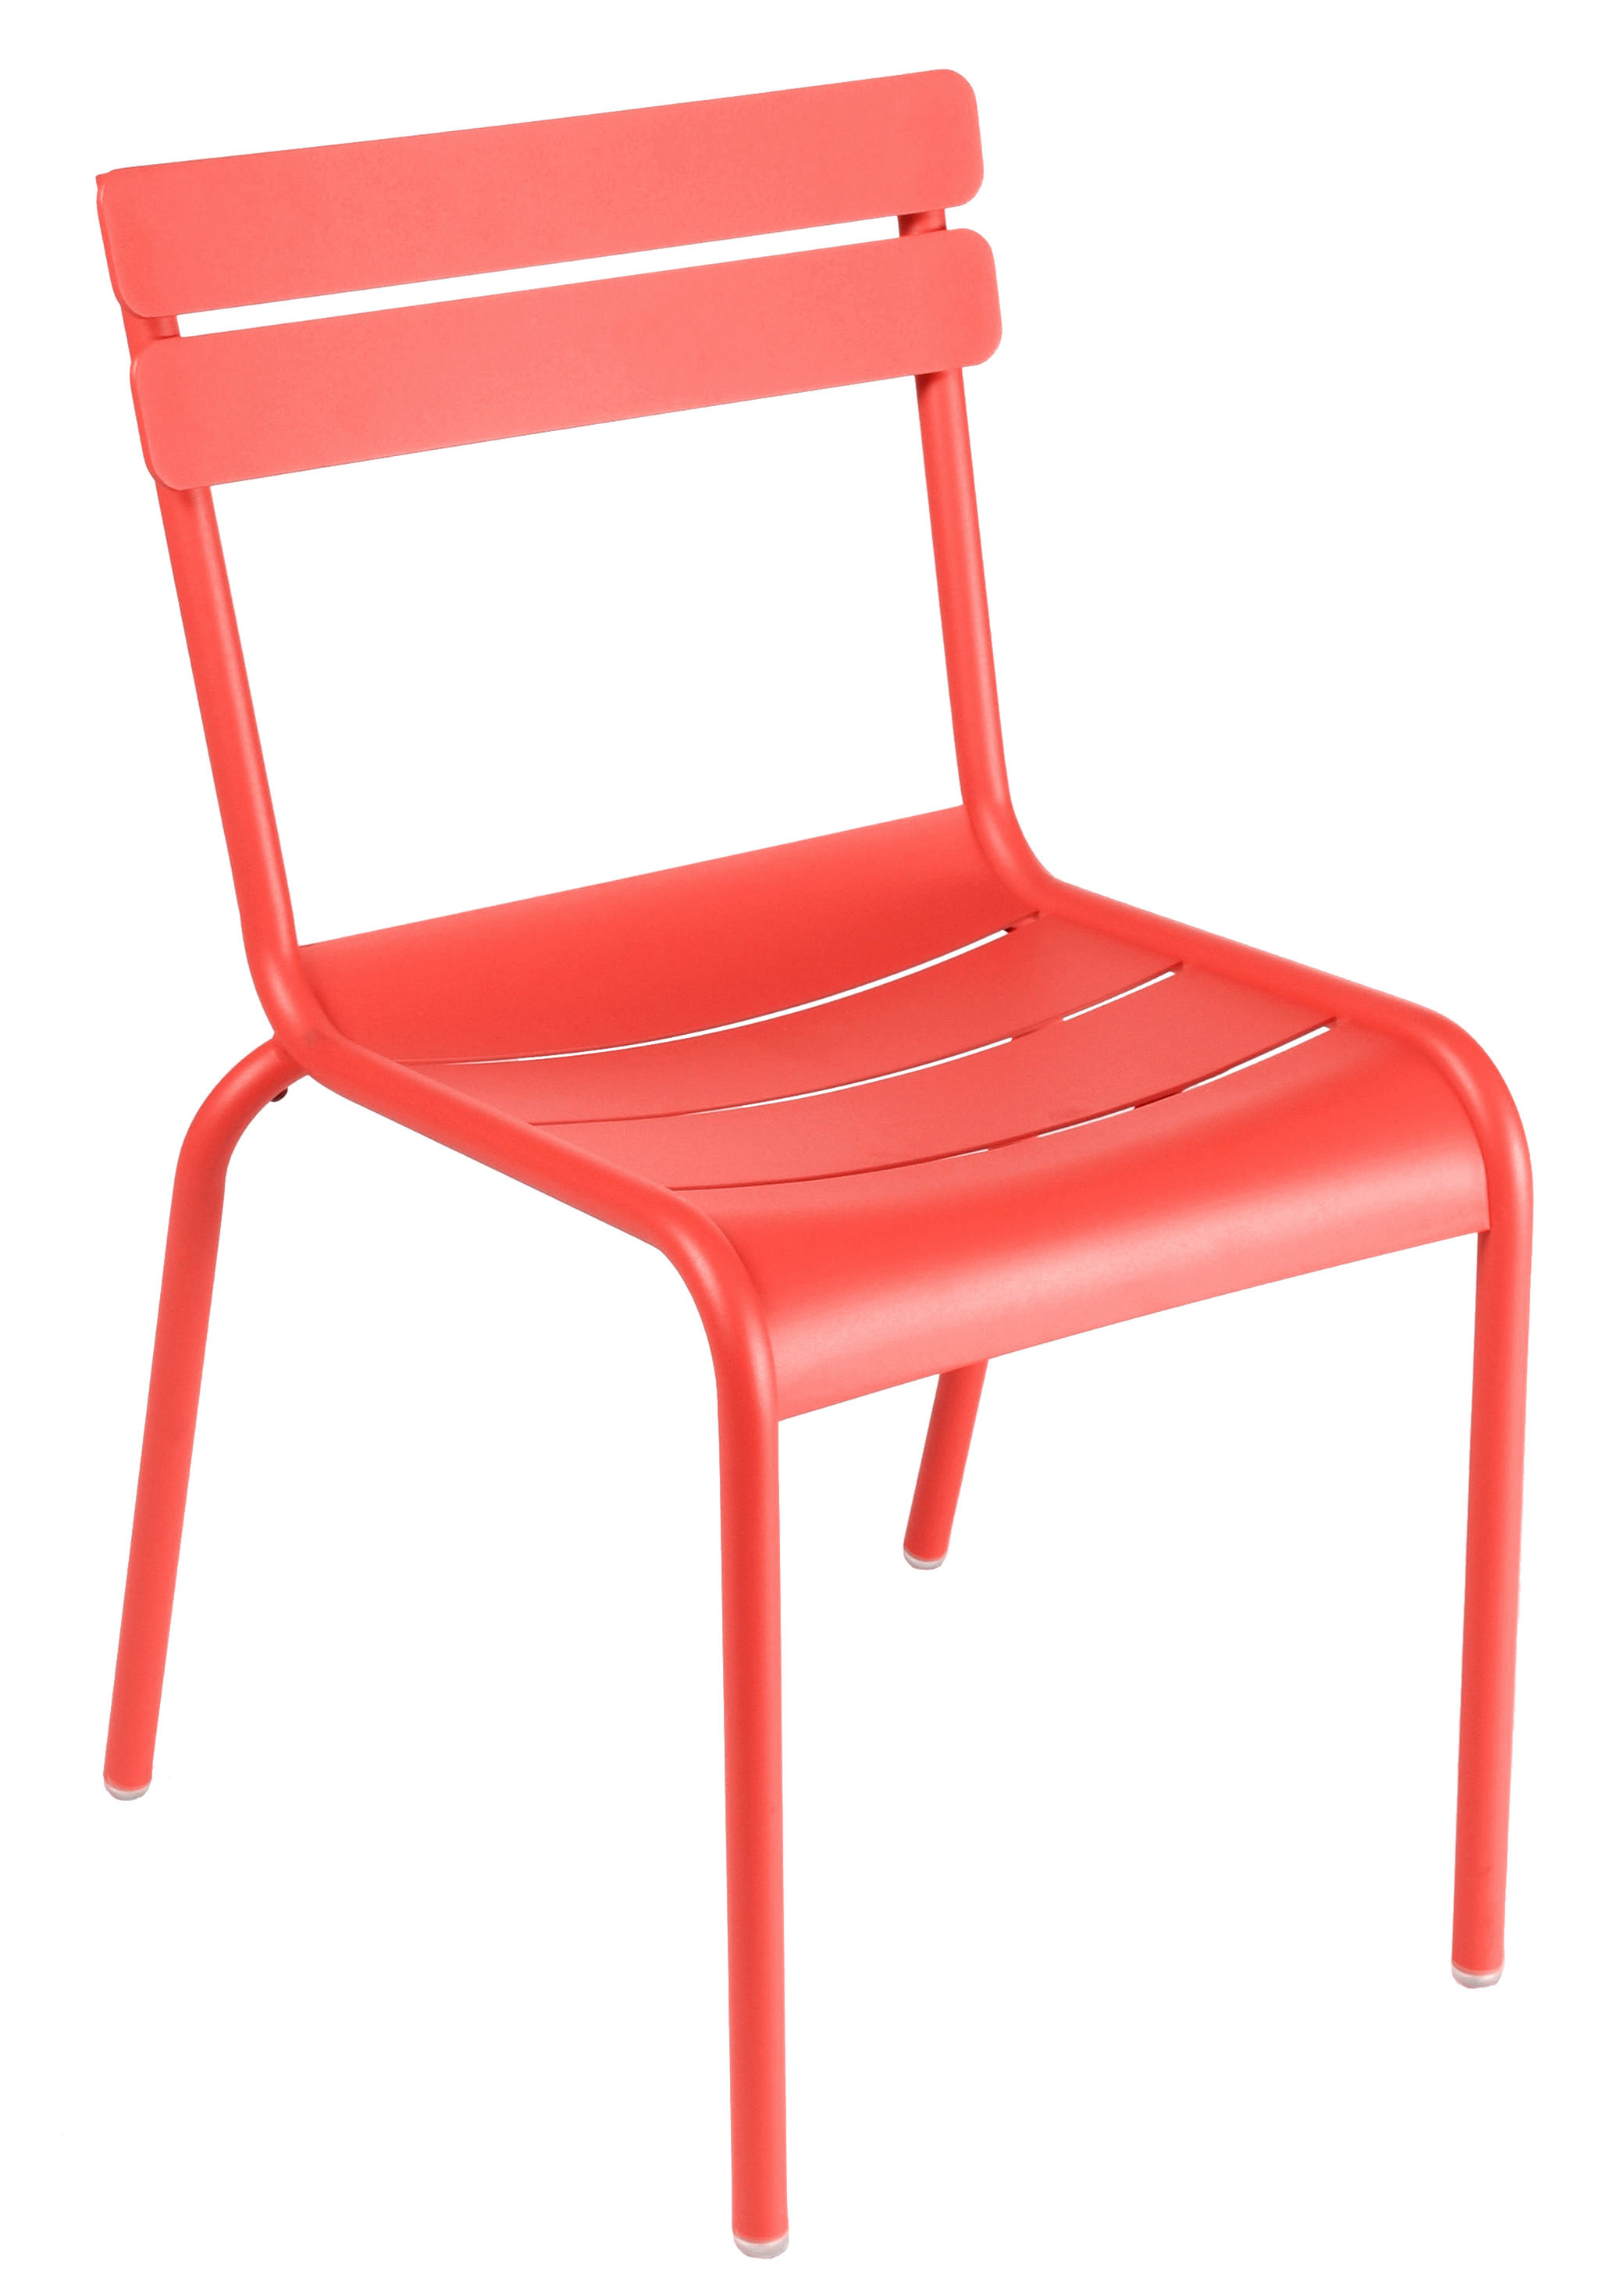 Life Style - Luxembourg Stacking chair - Metal by Fermob - Nasturtium - Lacquered aluminium